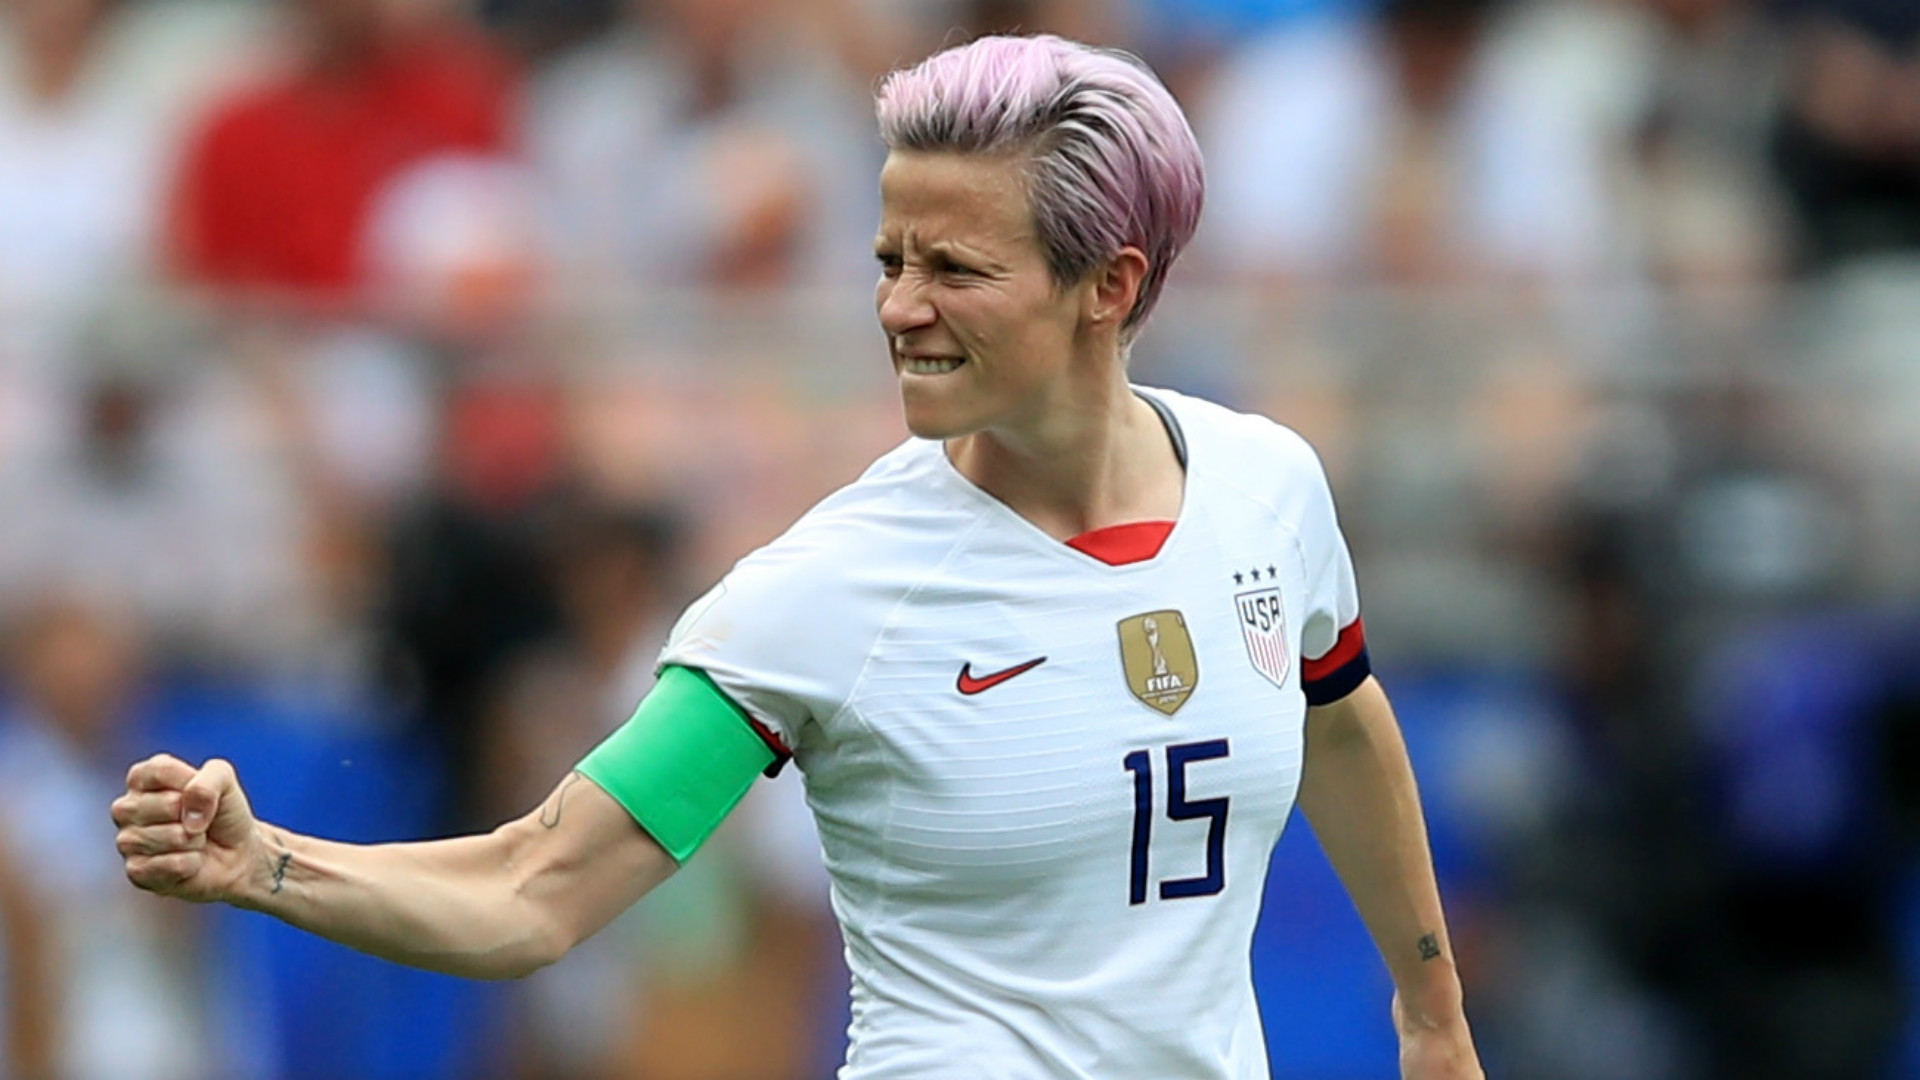 USWNT news US presidential candidate Inslee wants Rapinoe as 1920x1080